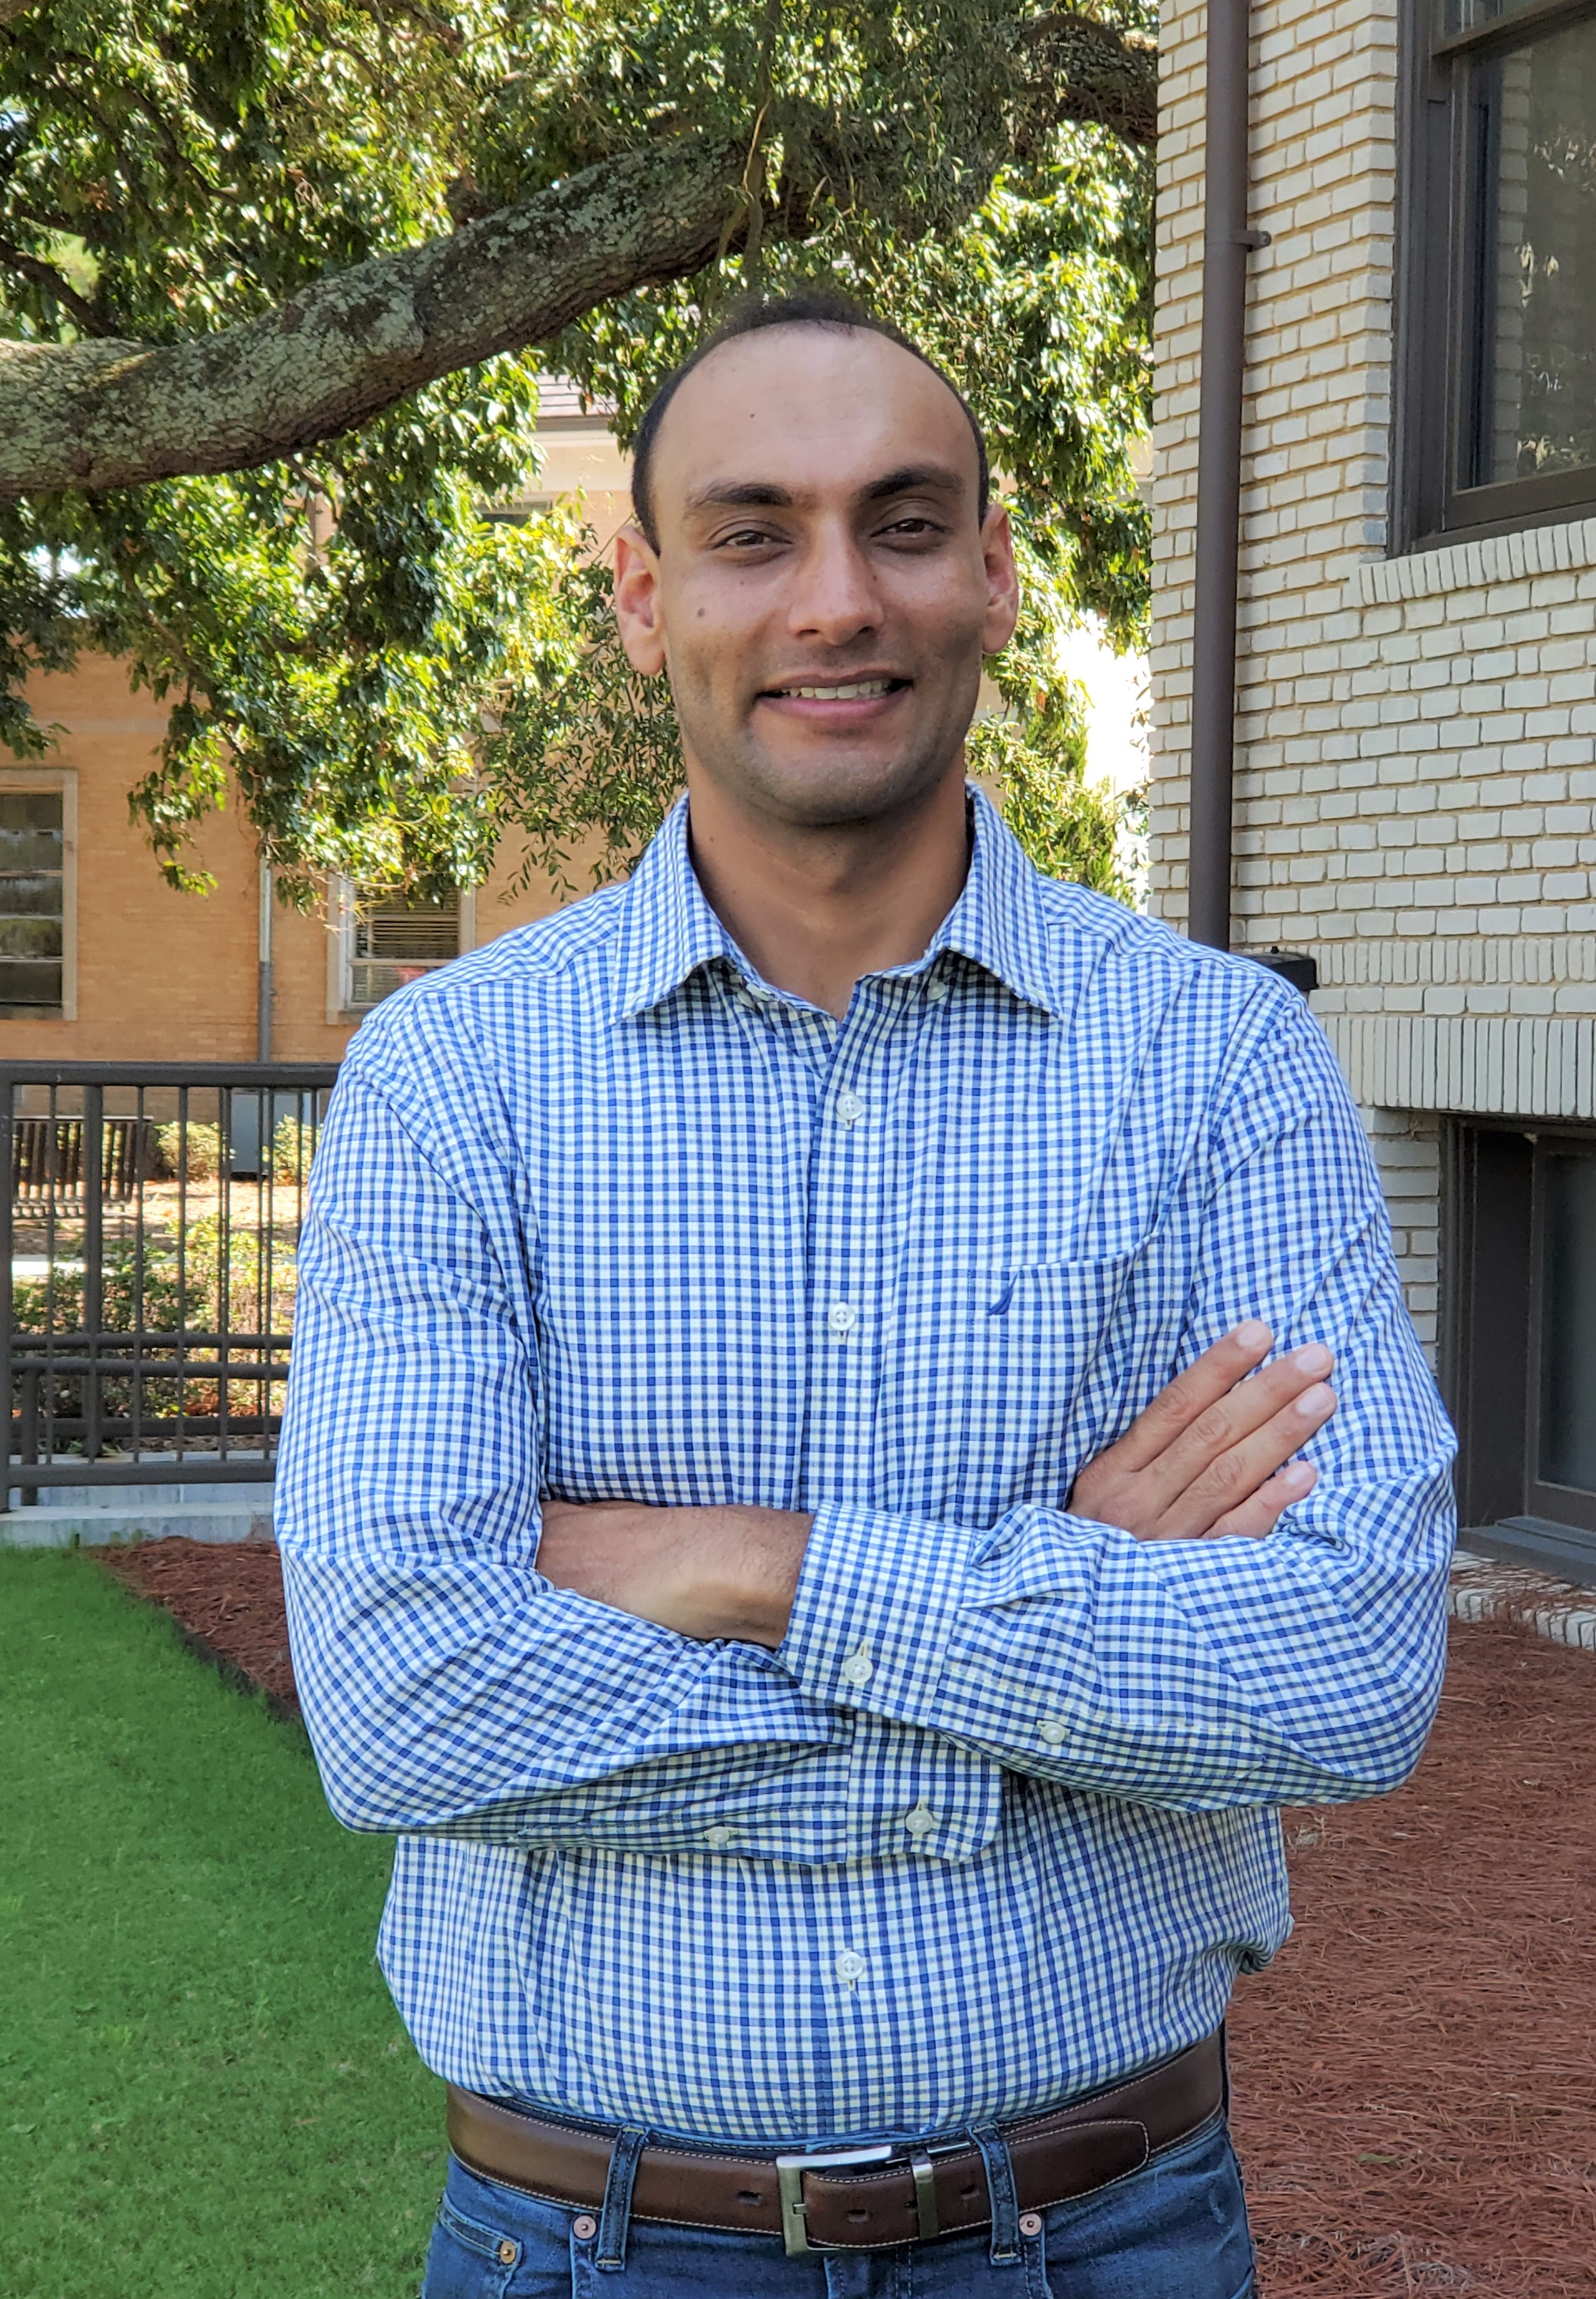 """Simerjeet """"Simer"""" Virk, who has served as a research engineer in the UGA's College of Agricultural and Environmental Sciences since 2016, took on a new role Aug. 1 as assistant professor and Extension precision agriculture specialist on UGA's Tifton campus."""